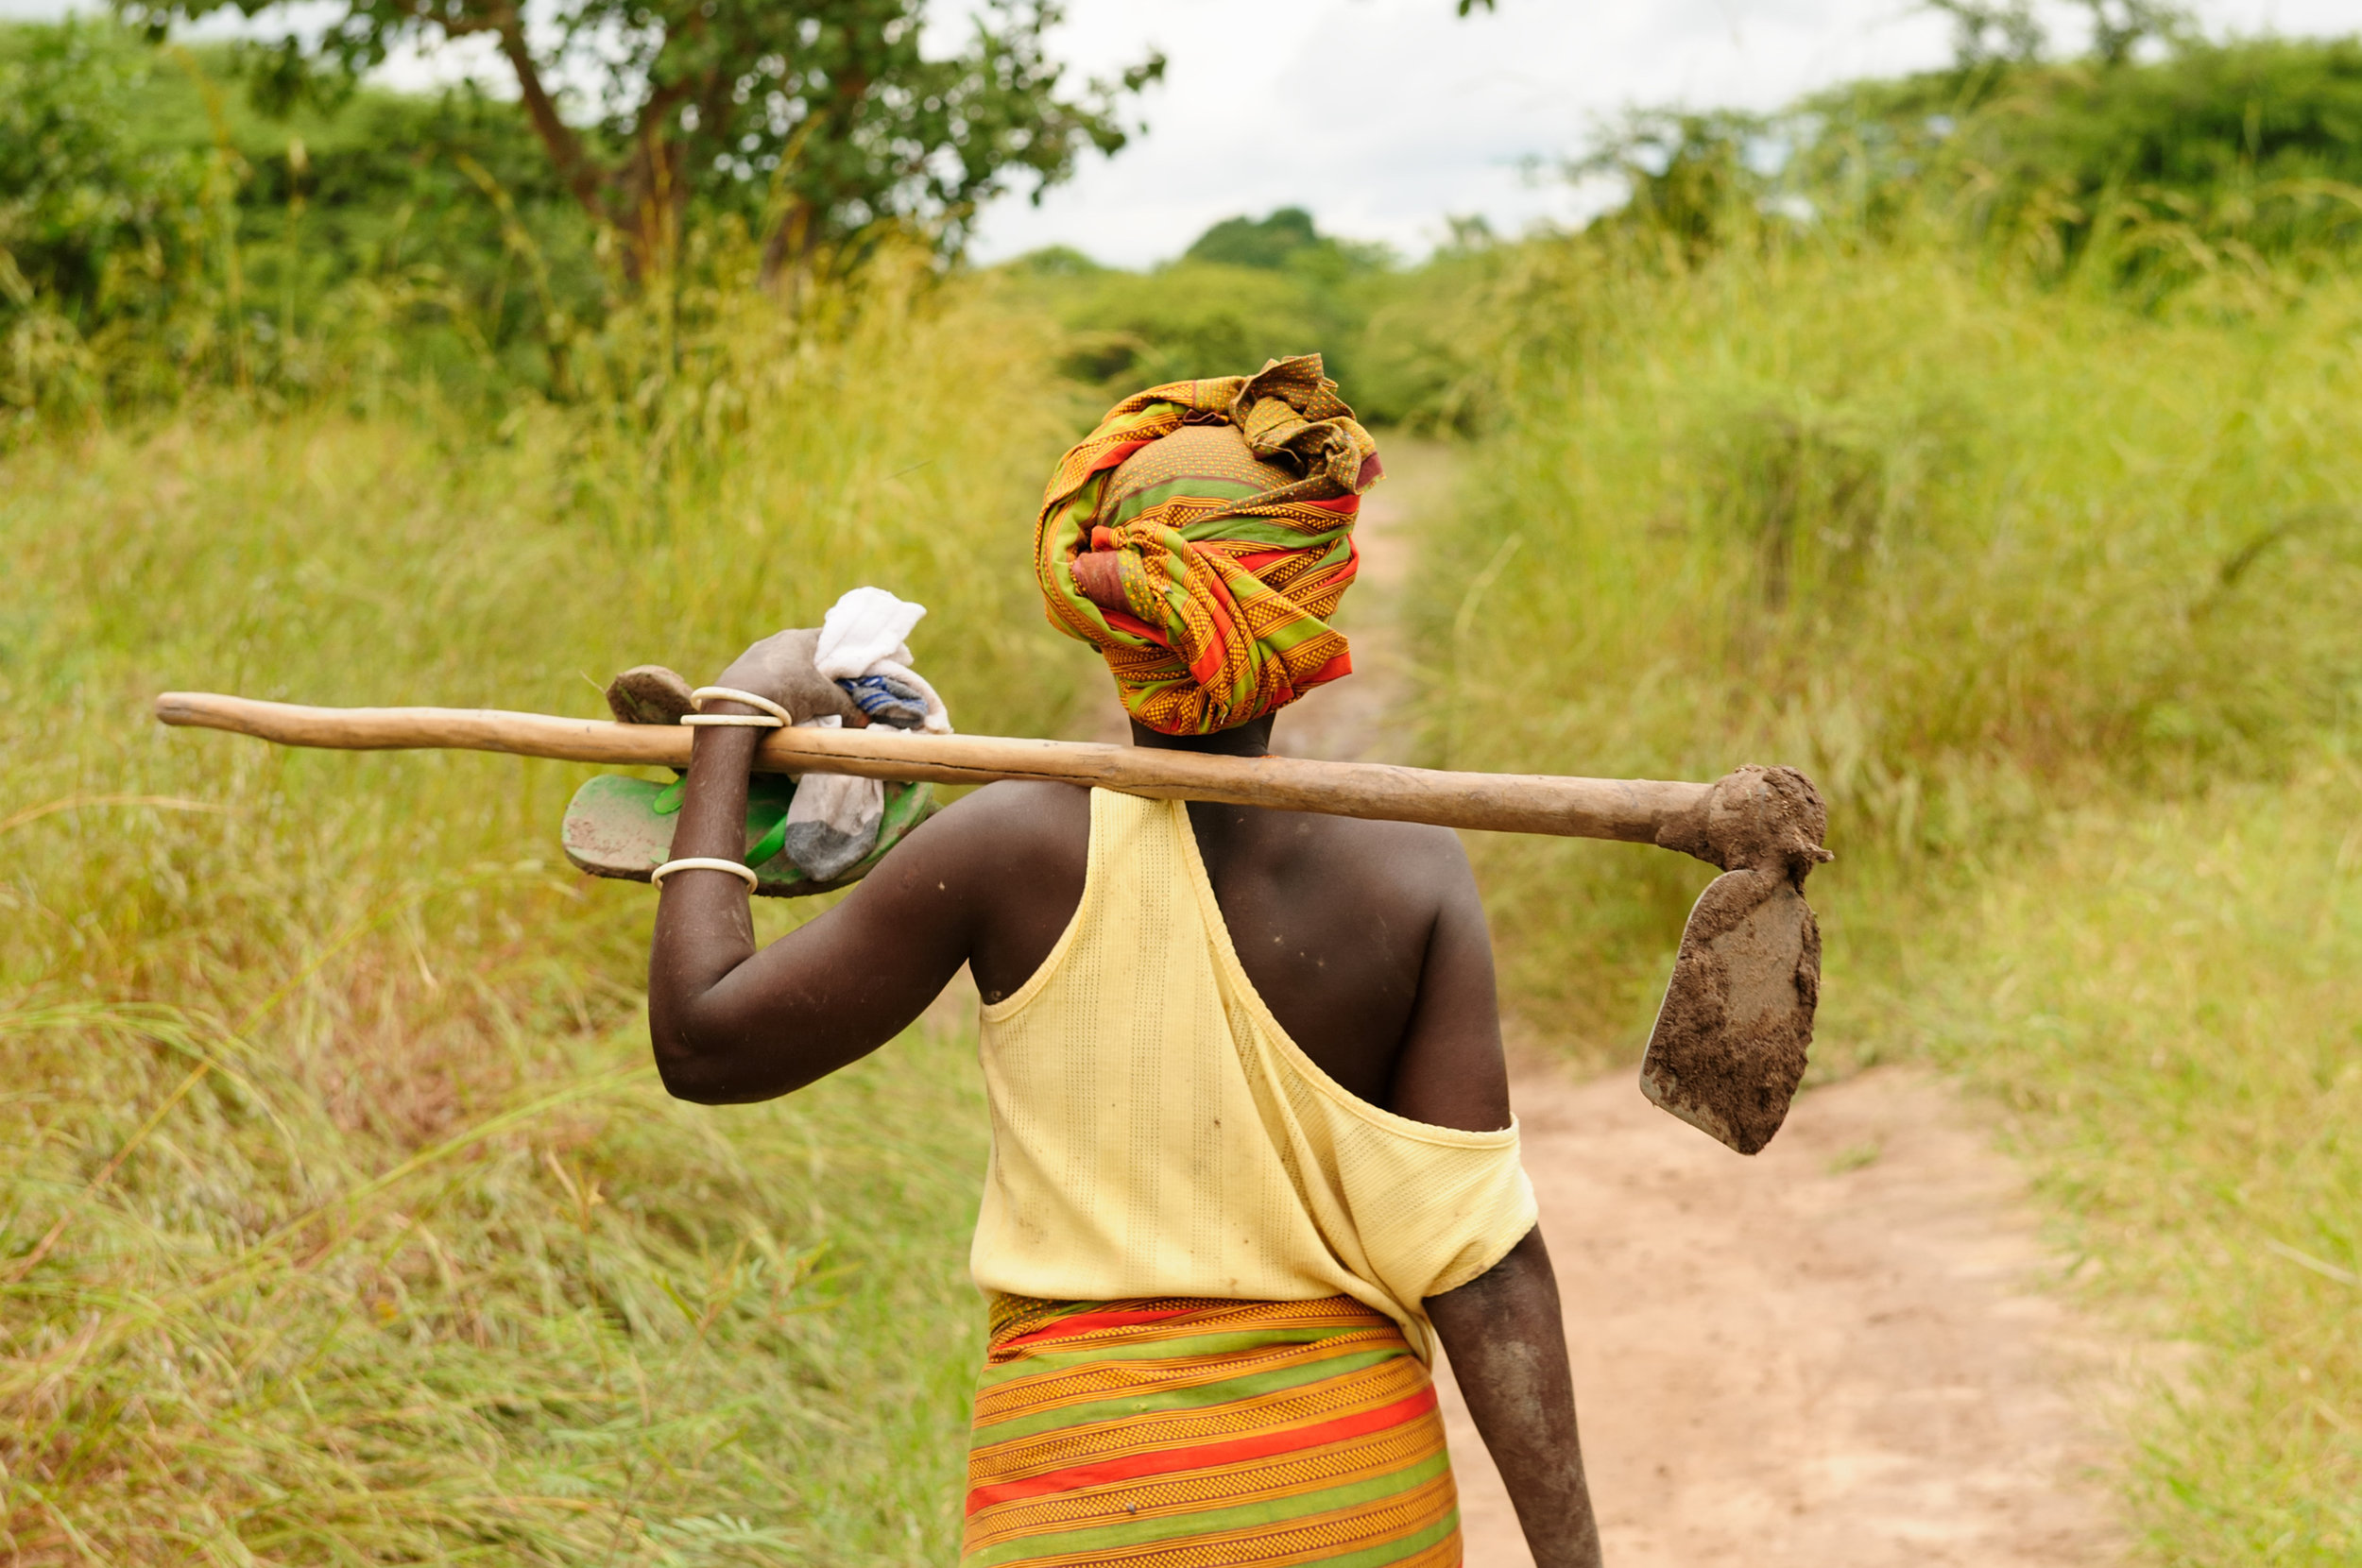 Roots-of-Peace-ROP-agriculture-Africa-woman-farmer-filed.jpg